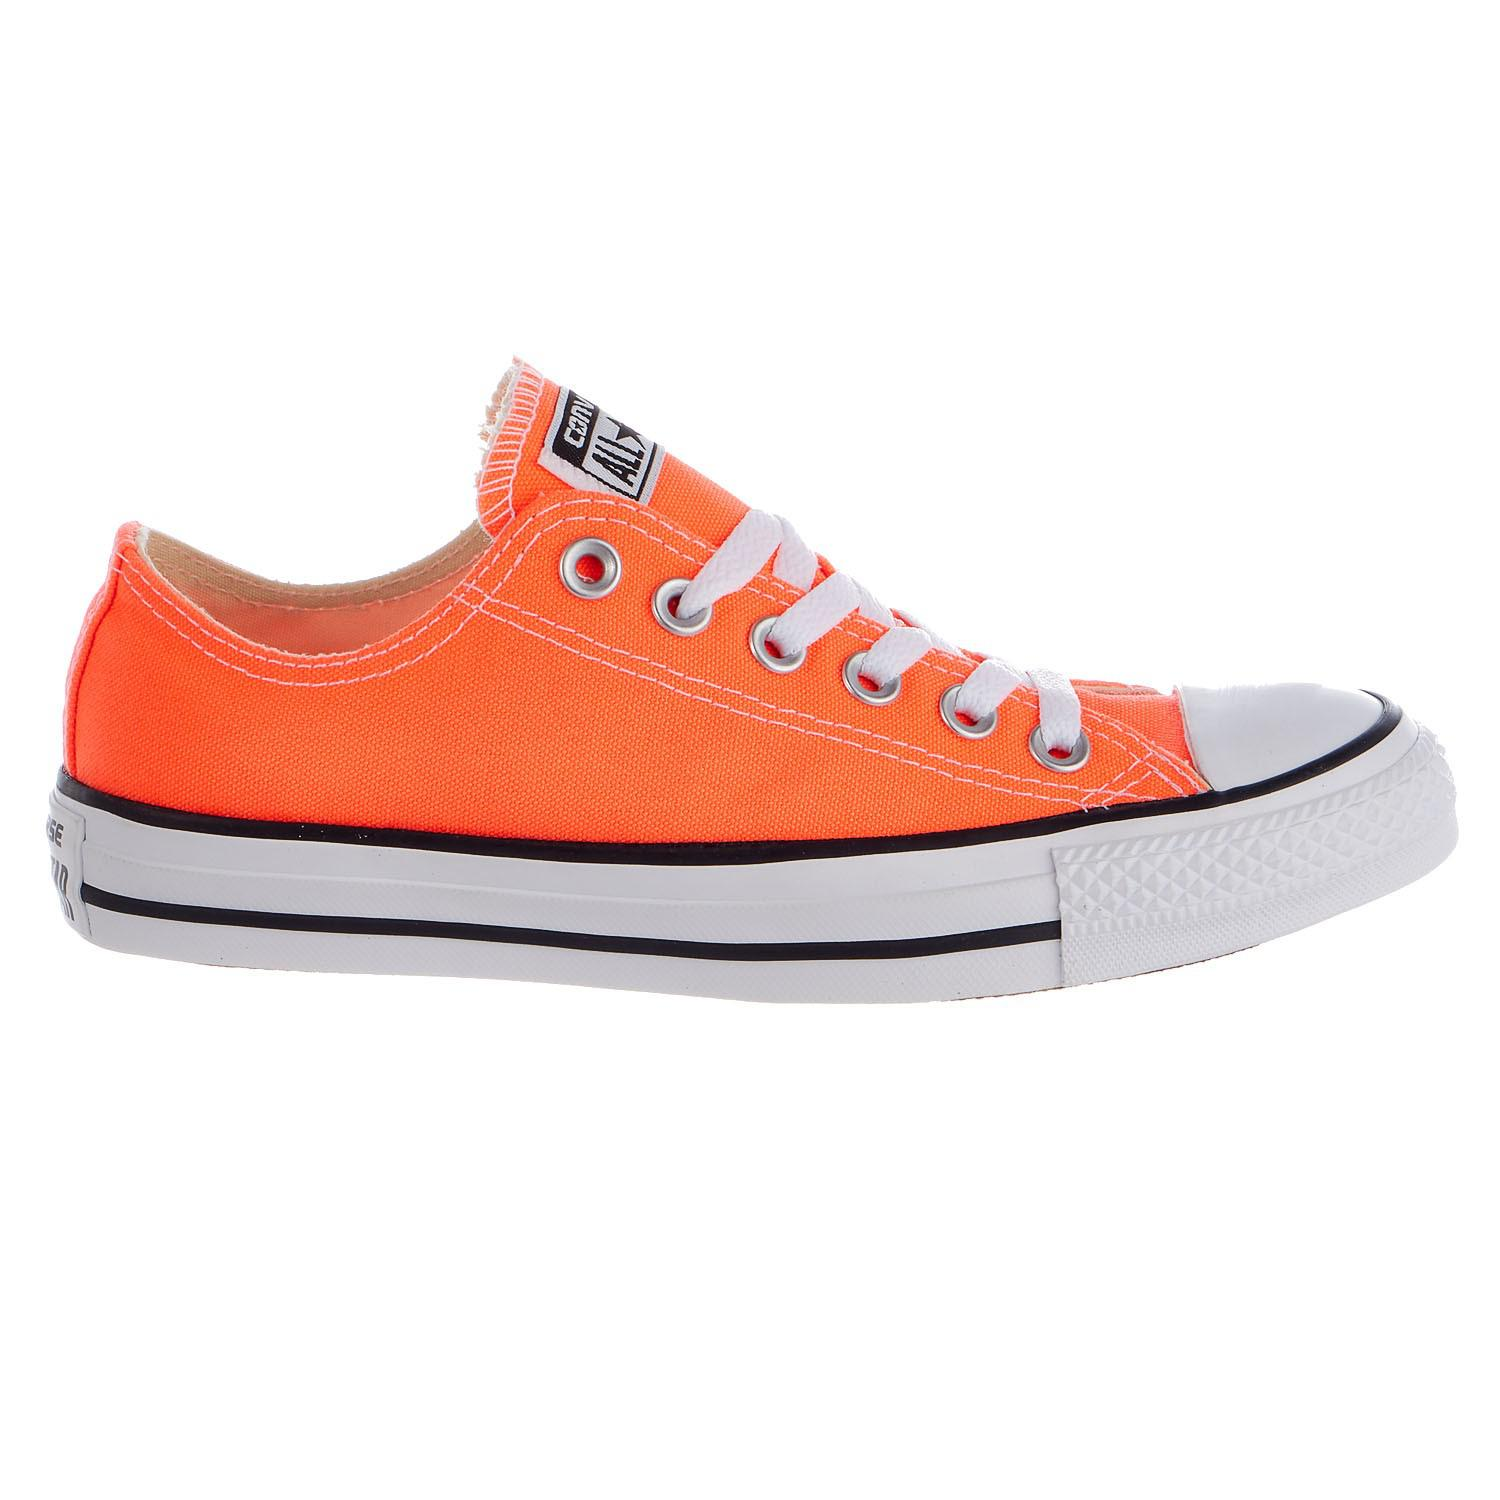 65481b621d2b Lyst - Converse Cap-toe Lace-up Sneakers in Orange for Men